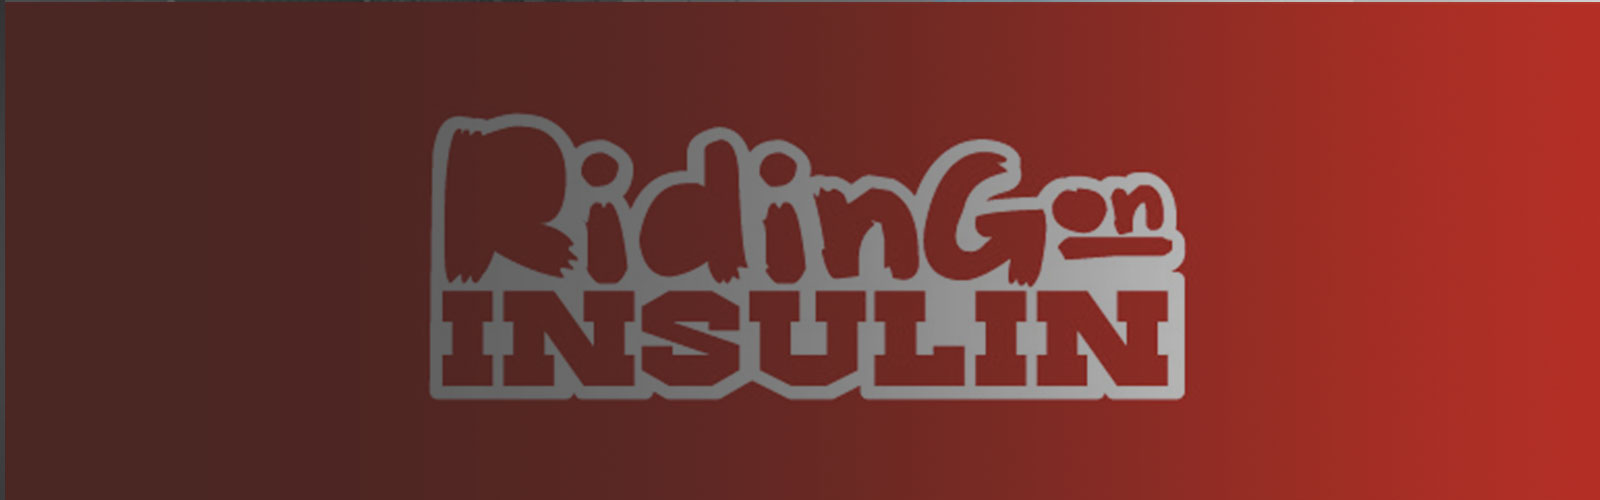 Mittun Launches the Riding On Insulin Website: A Global Action Sports Nonprofit